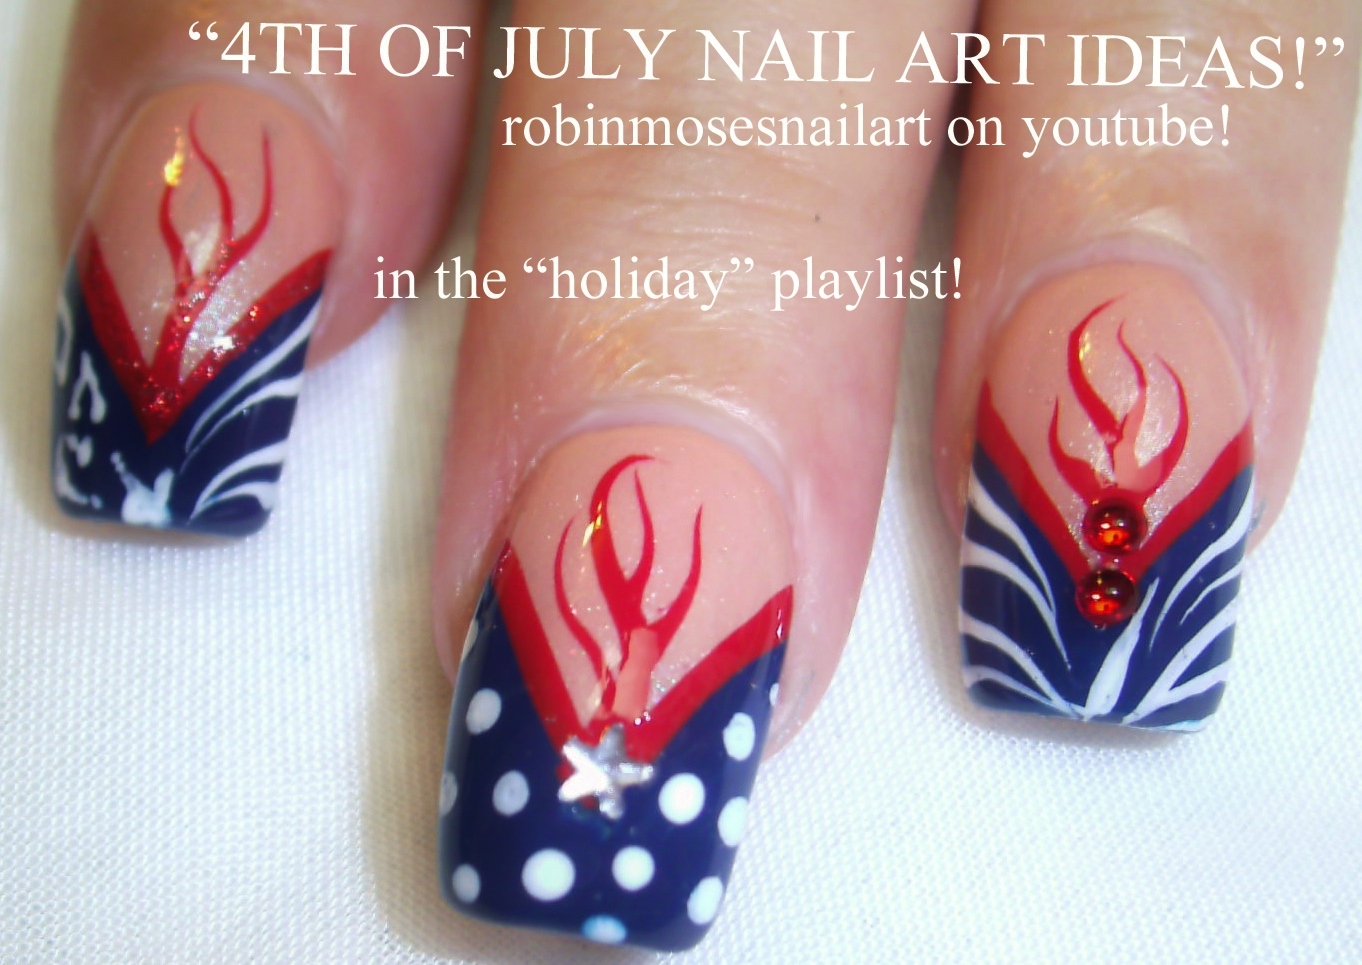 Robin moses nail art 4th of july nail tutorial up today red 4th of july nail art playlist diy easy independence day nail art tutorials fourth of july nails prinsesfo Gallery